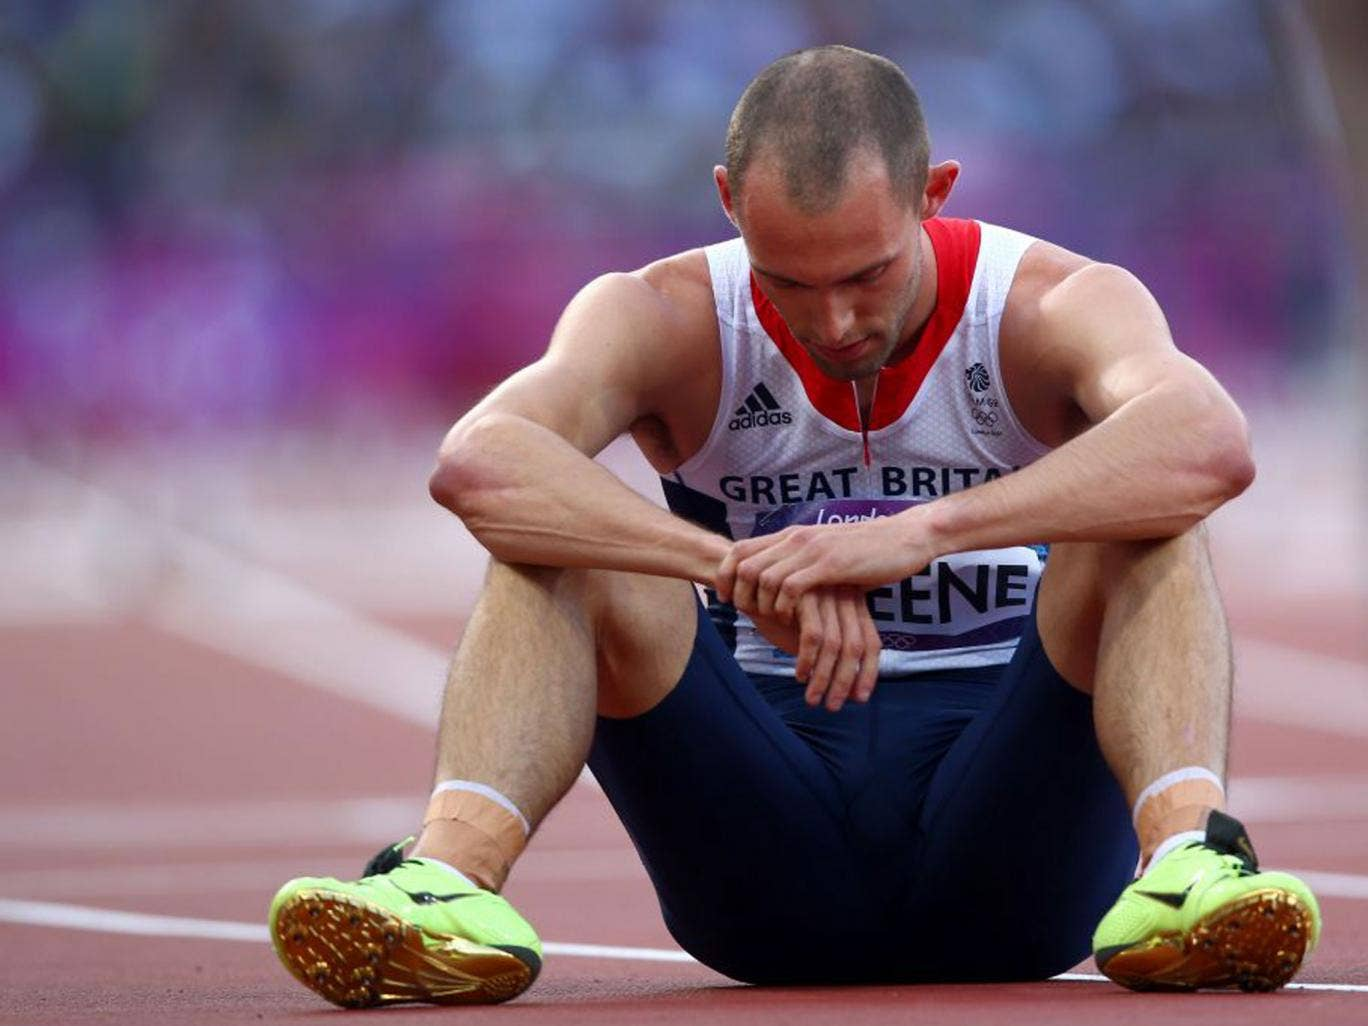 Dai Greene was just three-tenths of a second from winning medals in both the 400 metres hurdles and the 4x400m relay but, in the end, was left with two agonising fourth places